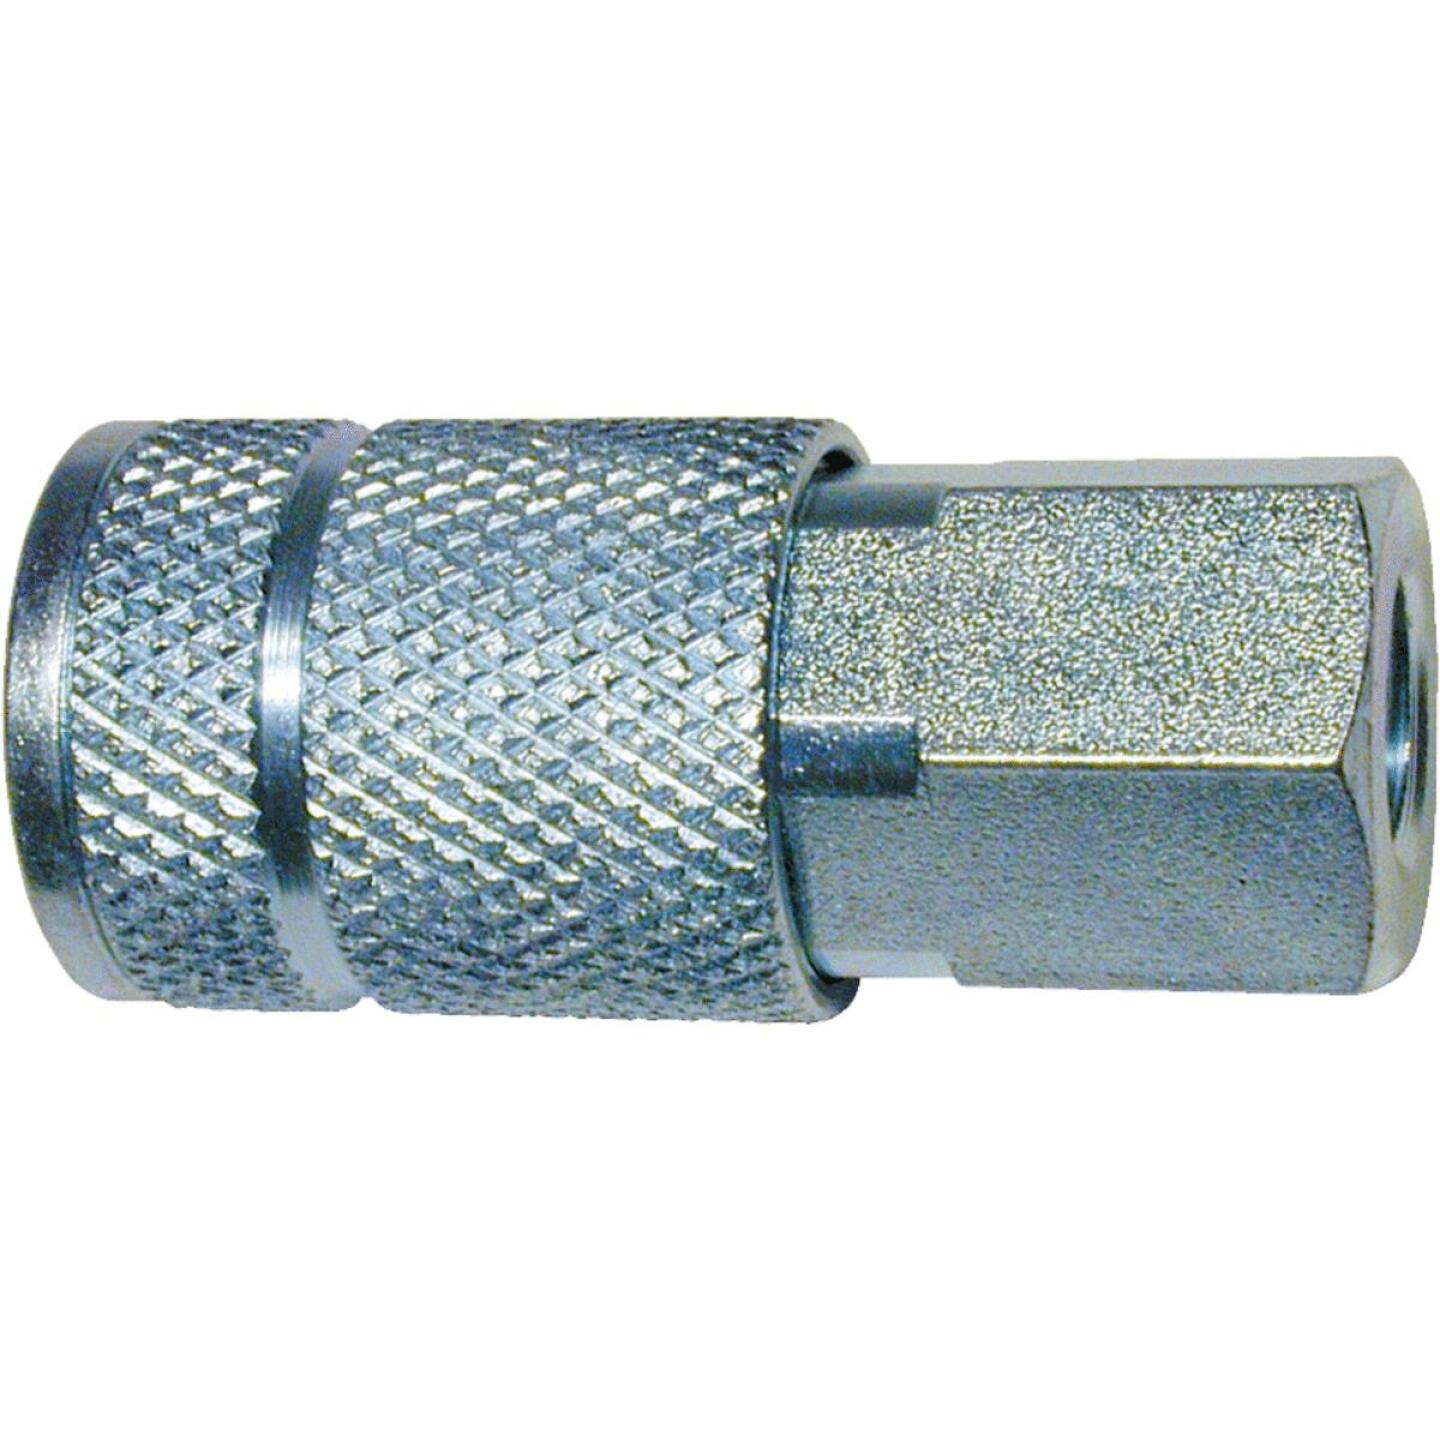 Tru-Flate Series Push-to-Connect 3/8 In. FNPT Coupler Image 1